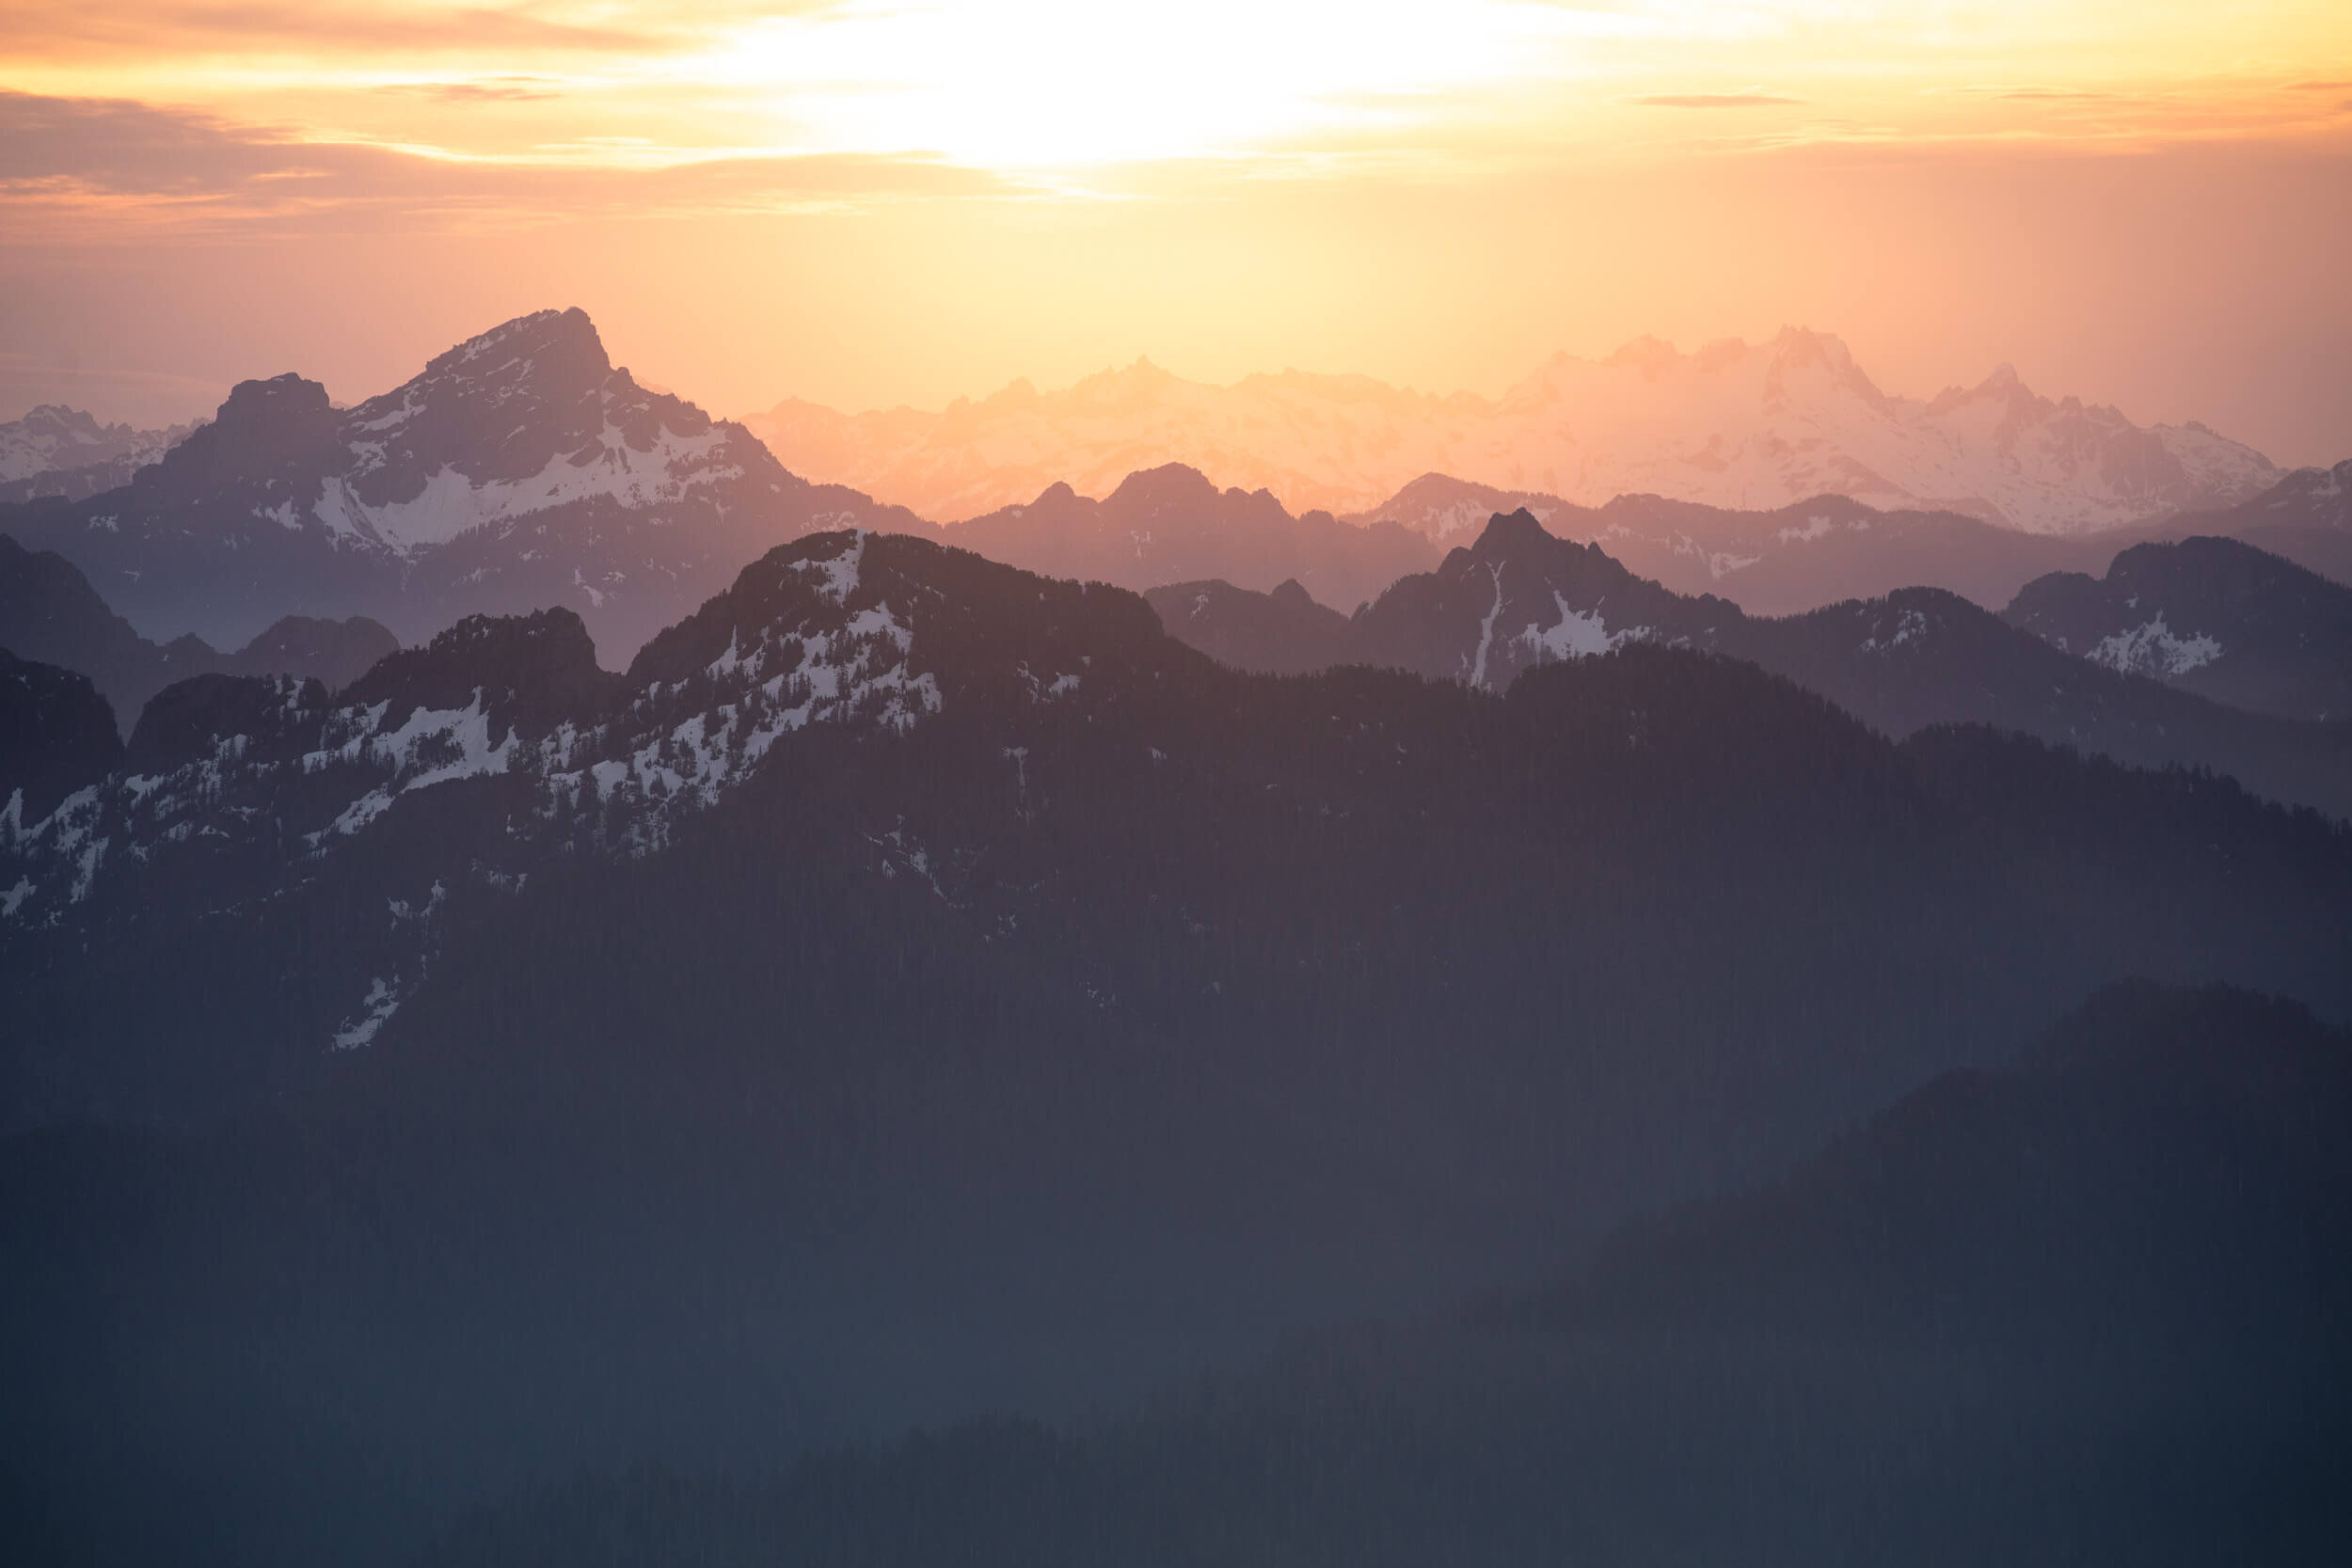 The view at sunset from Pilchuck Lookout in Washington.